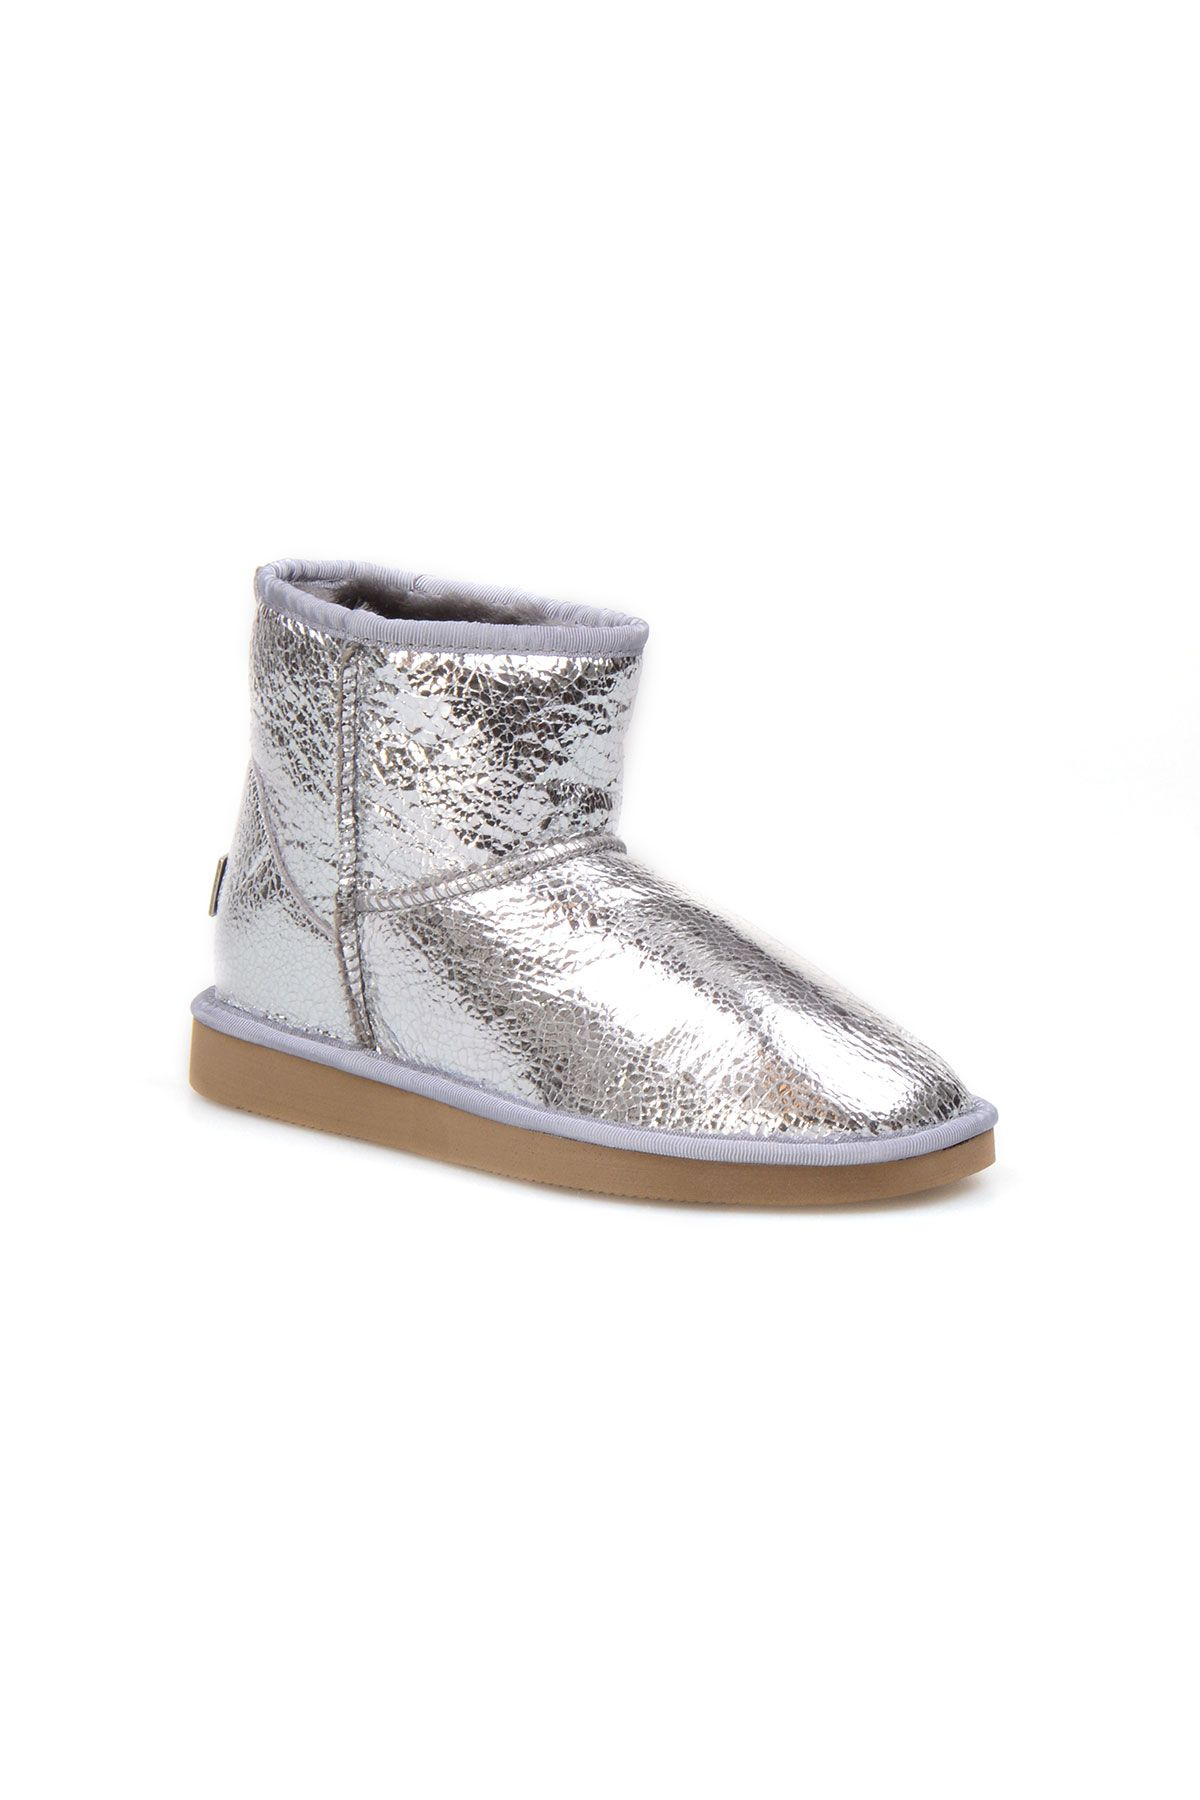 Pegia Genuine Shearling Glass Fracture Women's Ankle Boots 191027 Silver